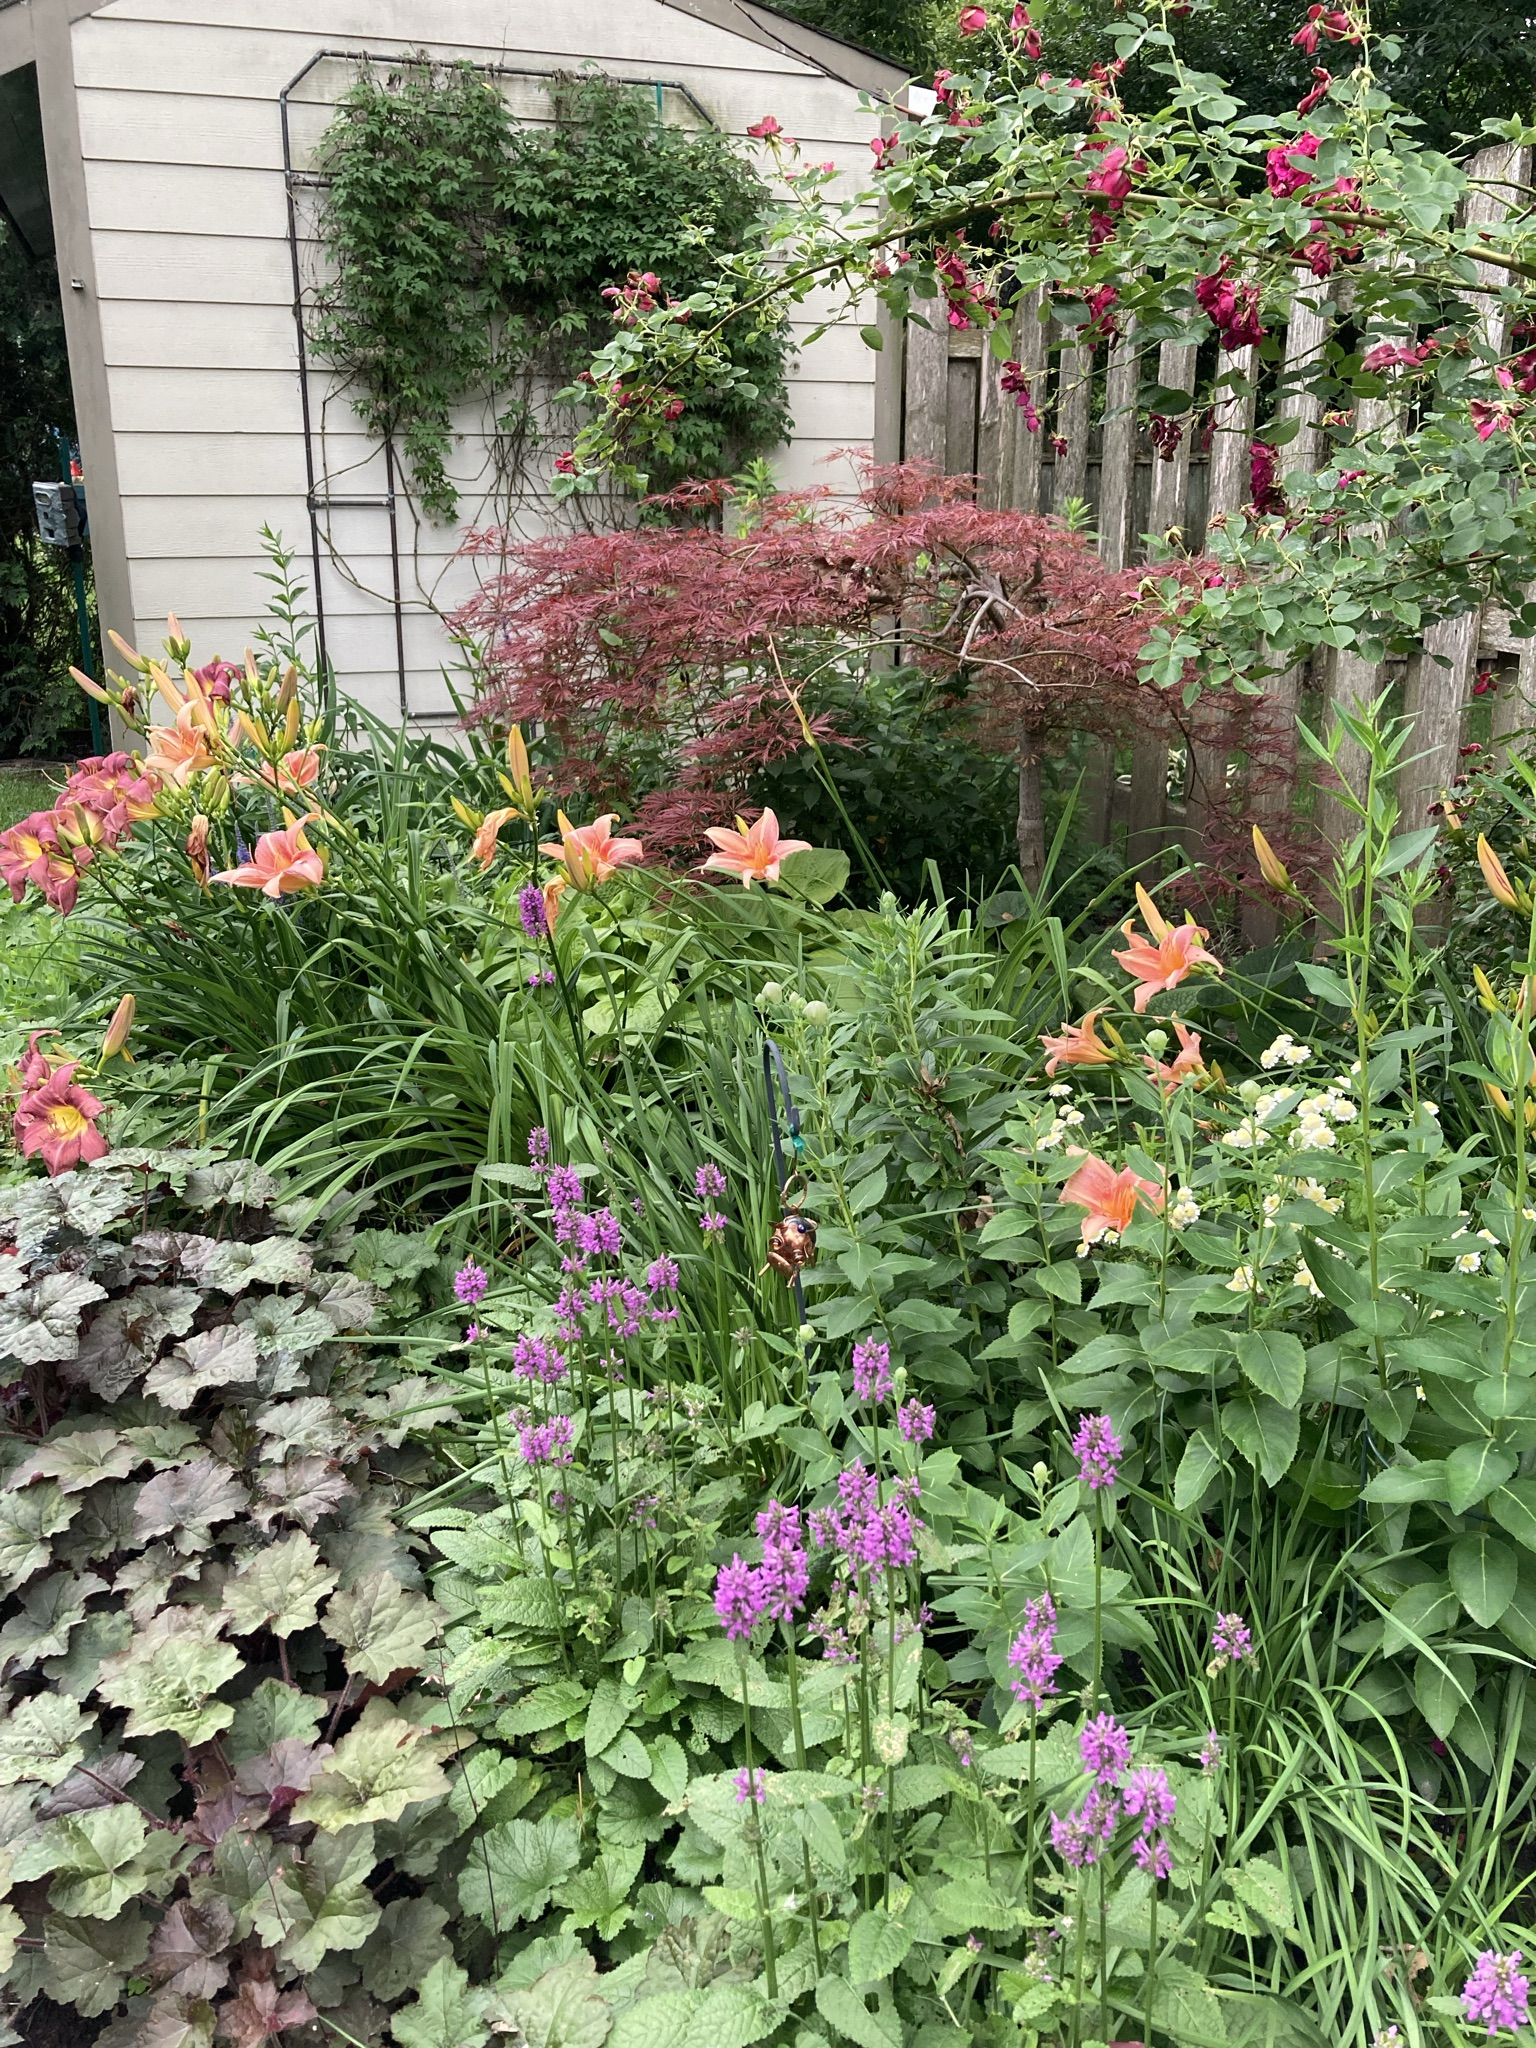 Garden bed leaning against a wooden fence